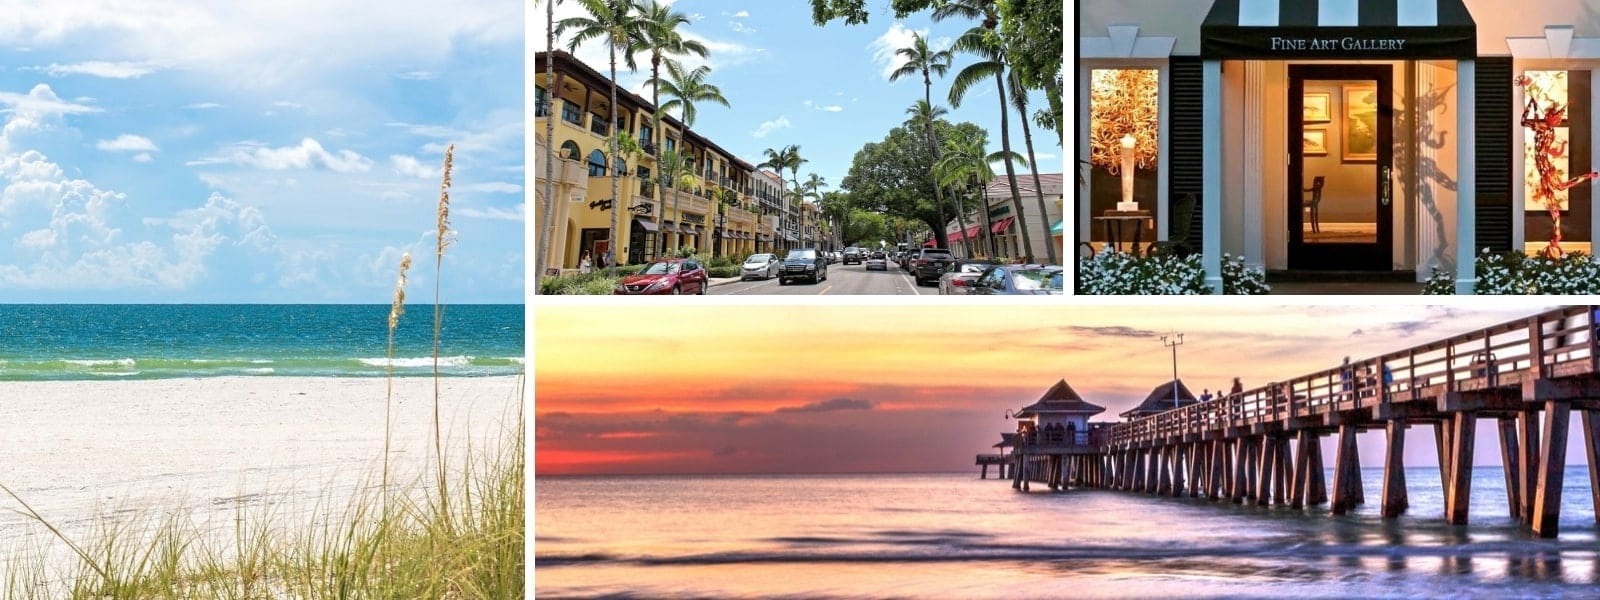 Naples Named Best Place to Retire